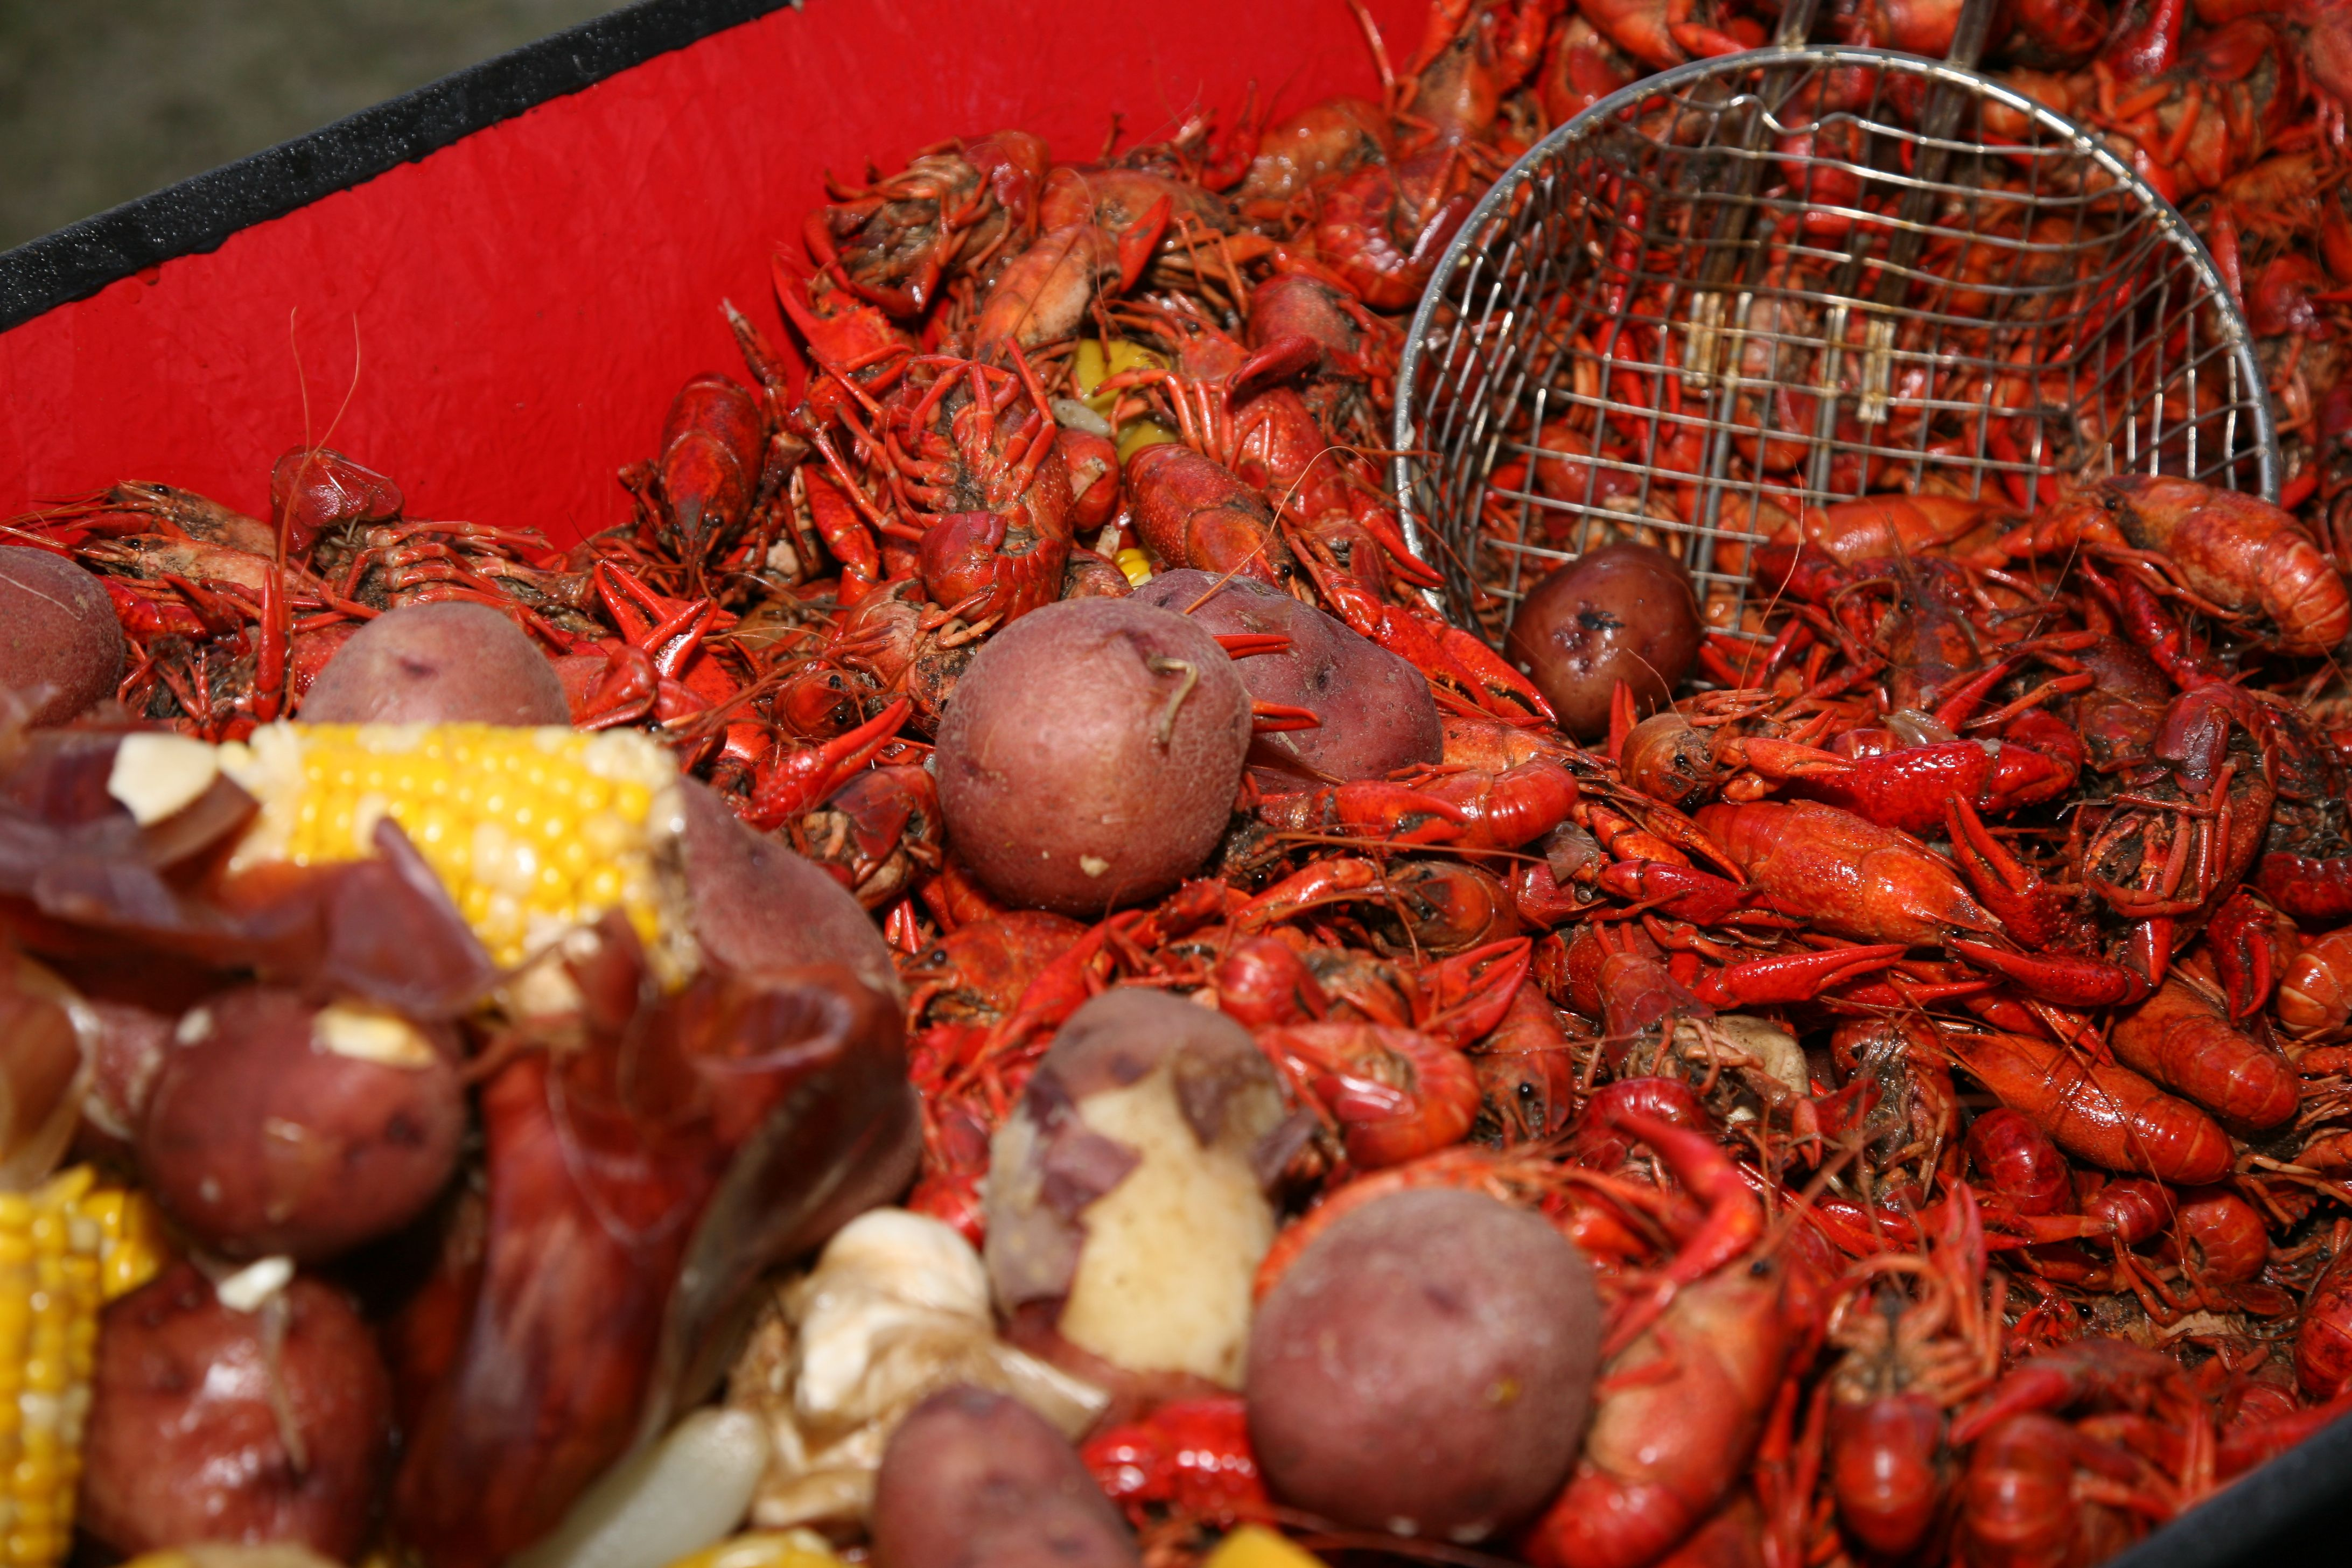 Craving Crawfish? Sign up today for our Golf Fest on April